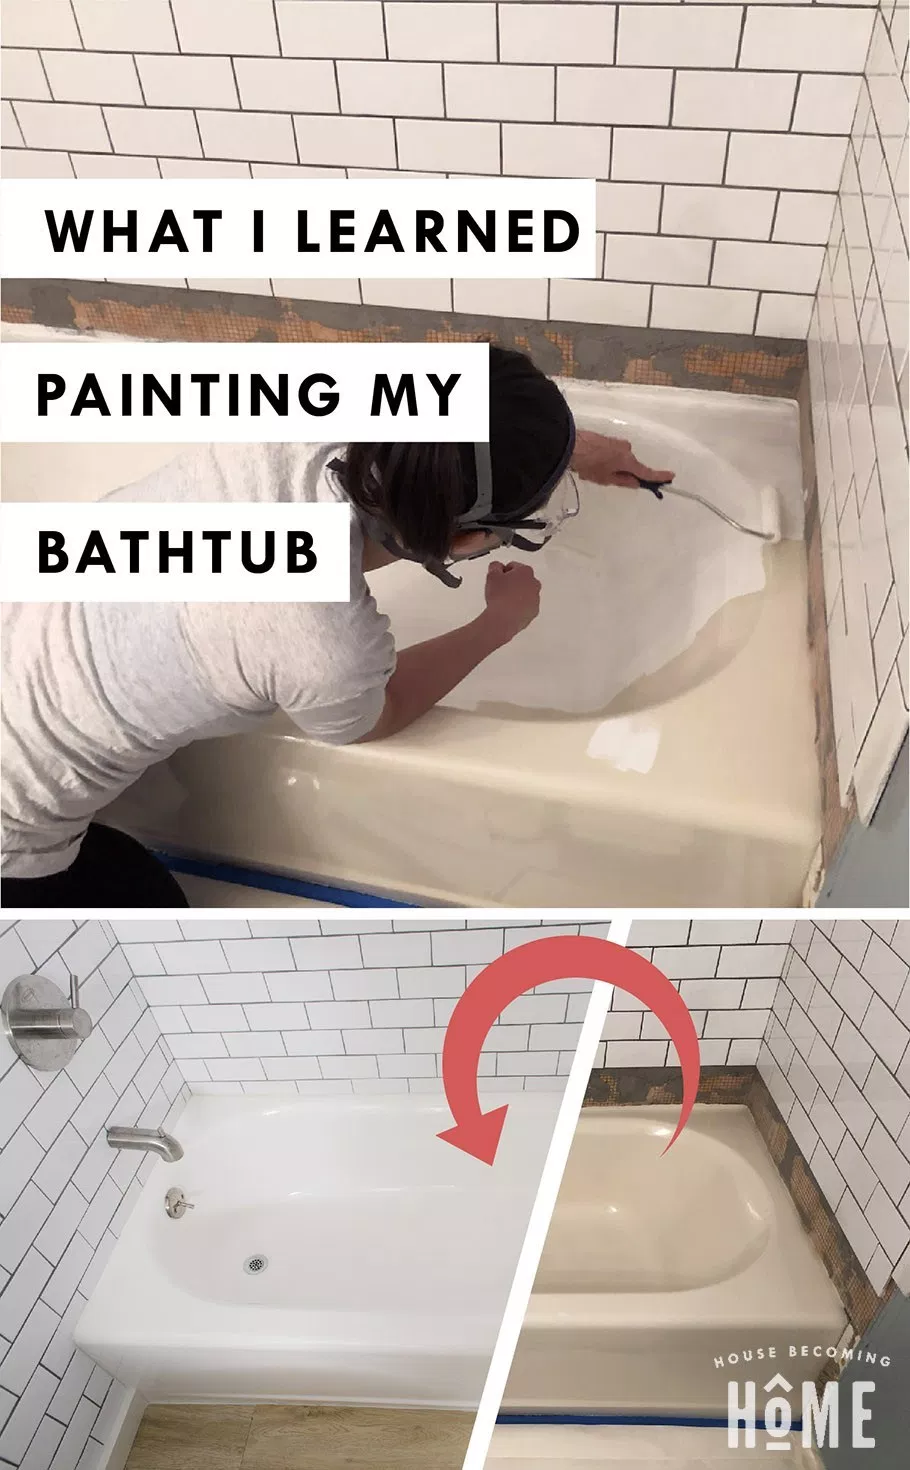 How To Paint A Bathtub Painting Bathtub Diy Bathtub Diy Bathroom Remodel